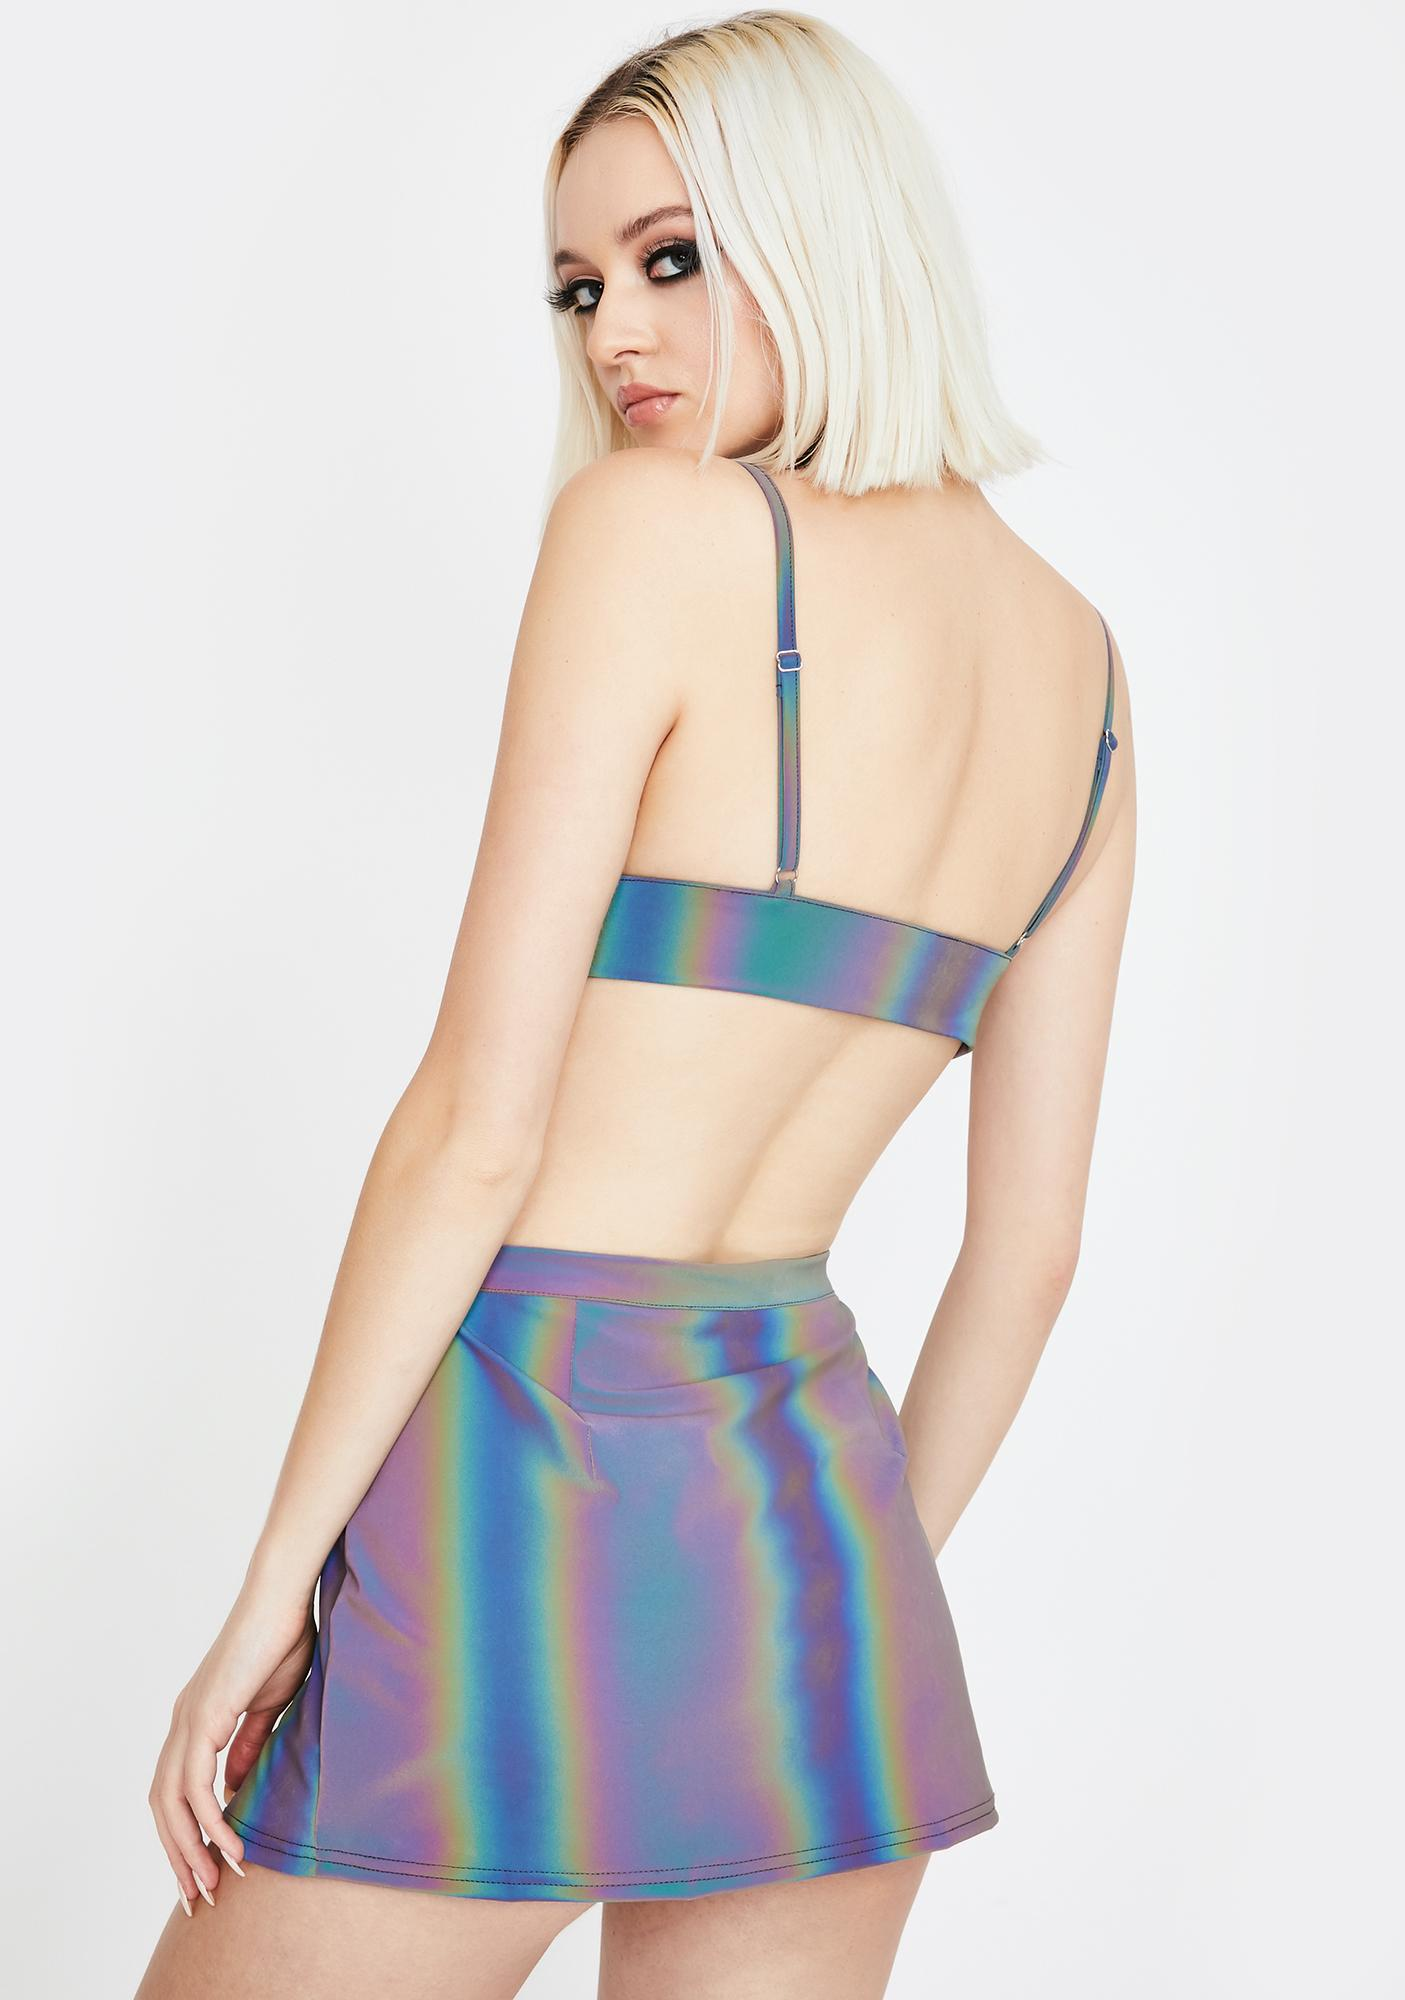 Club Exx Spectral Frequency Reflective Buckle Skirt